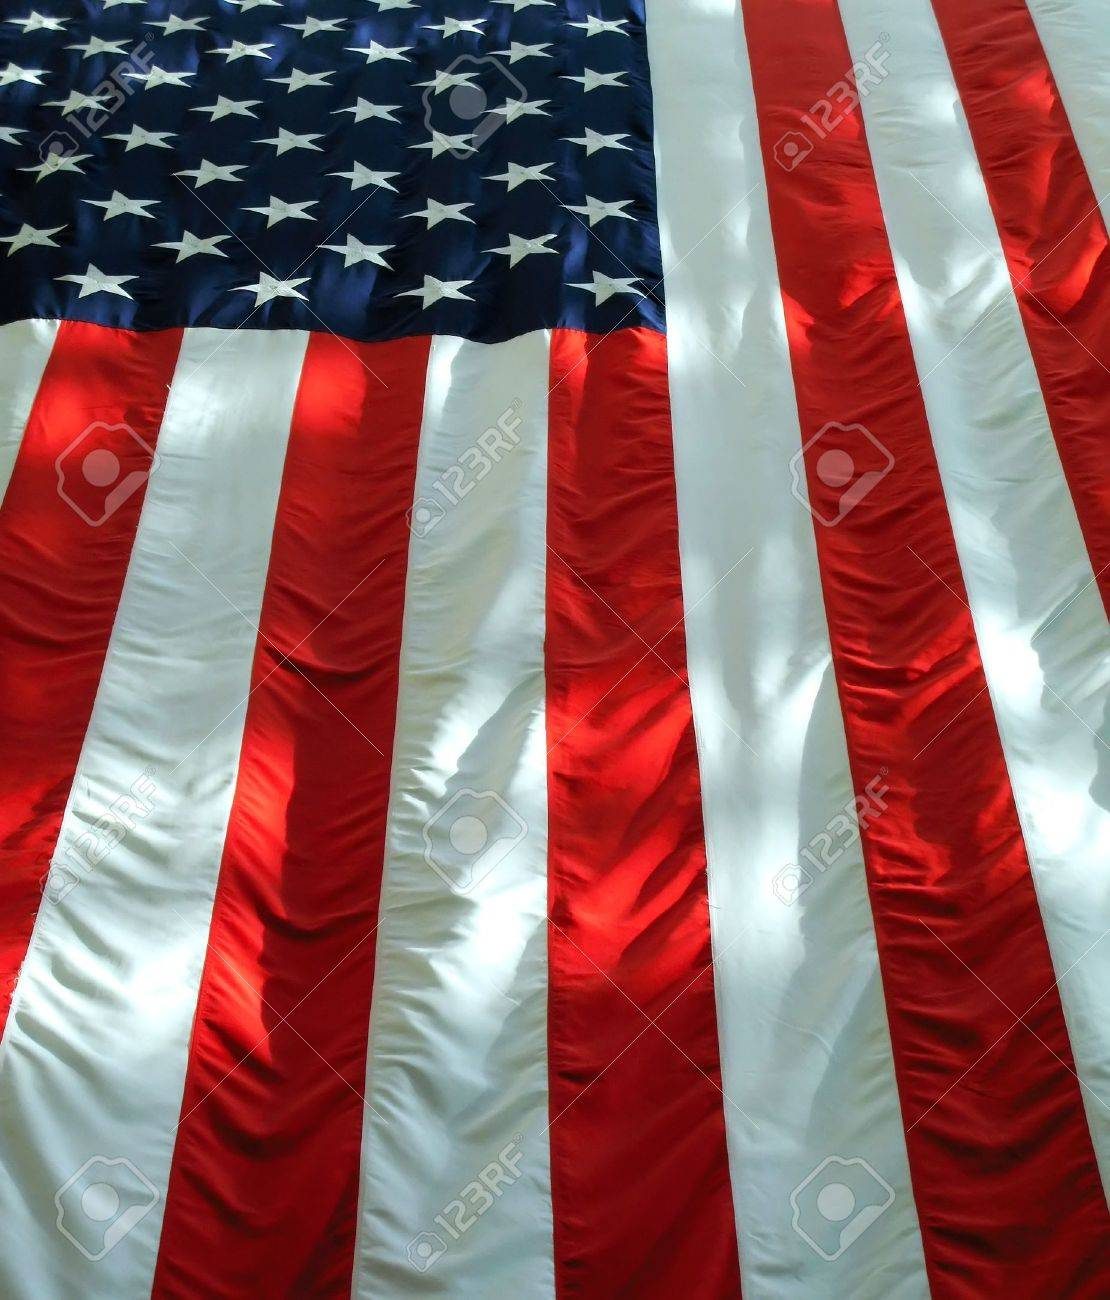 Vertically hung American flag with light and shadows. Stock Photo - 3293873